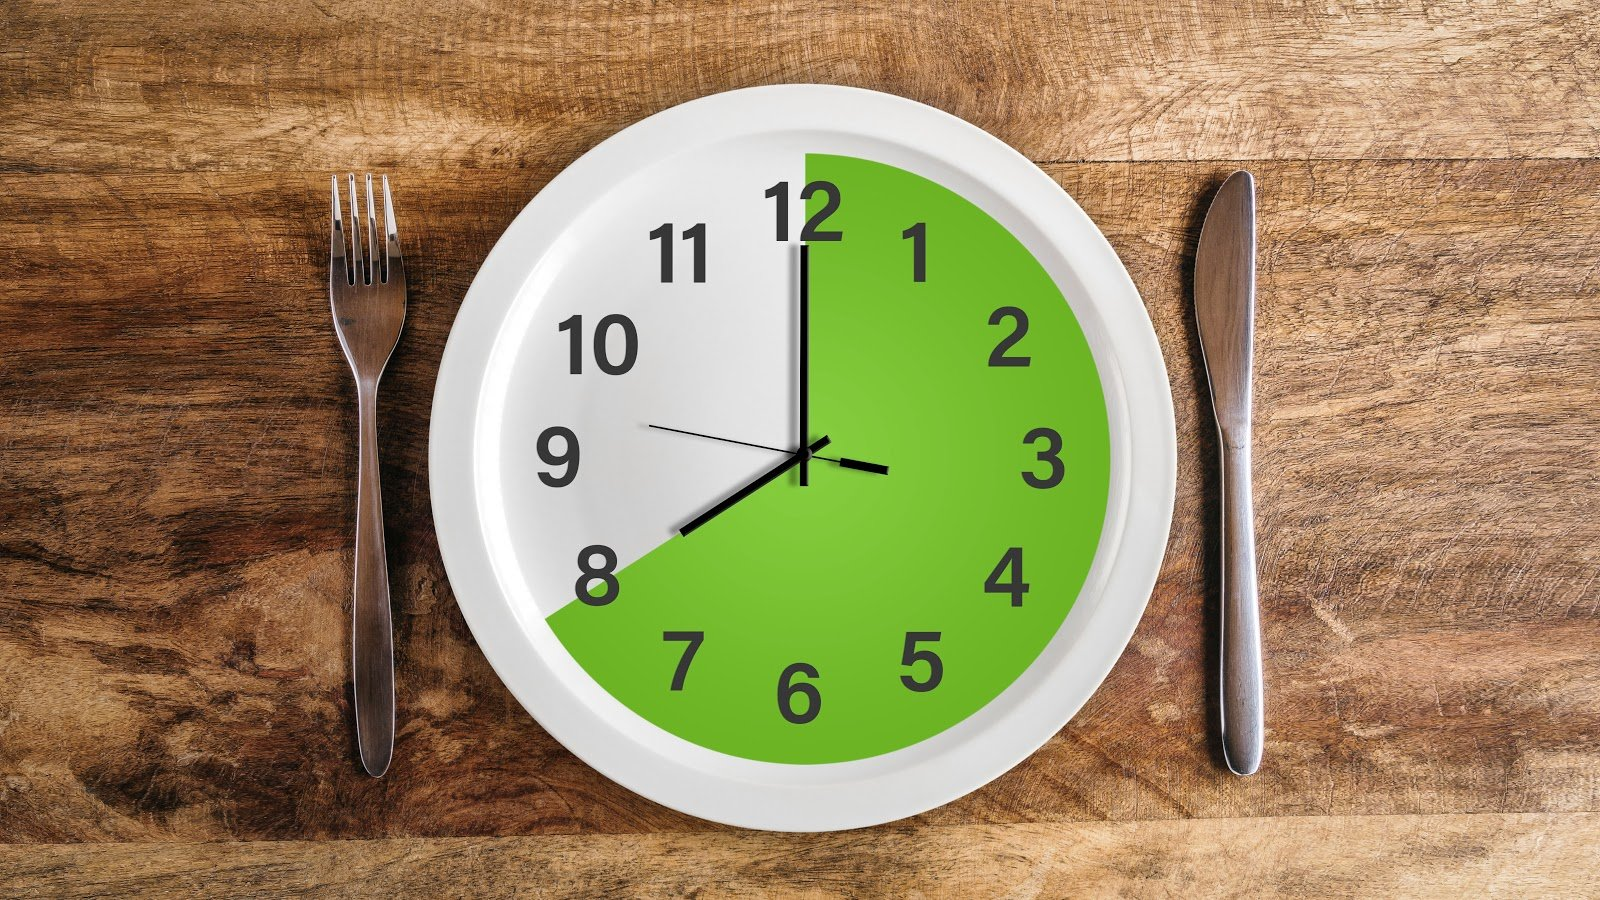 Bone broth fast: a clock with a knife and fork in the table